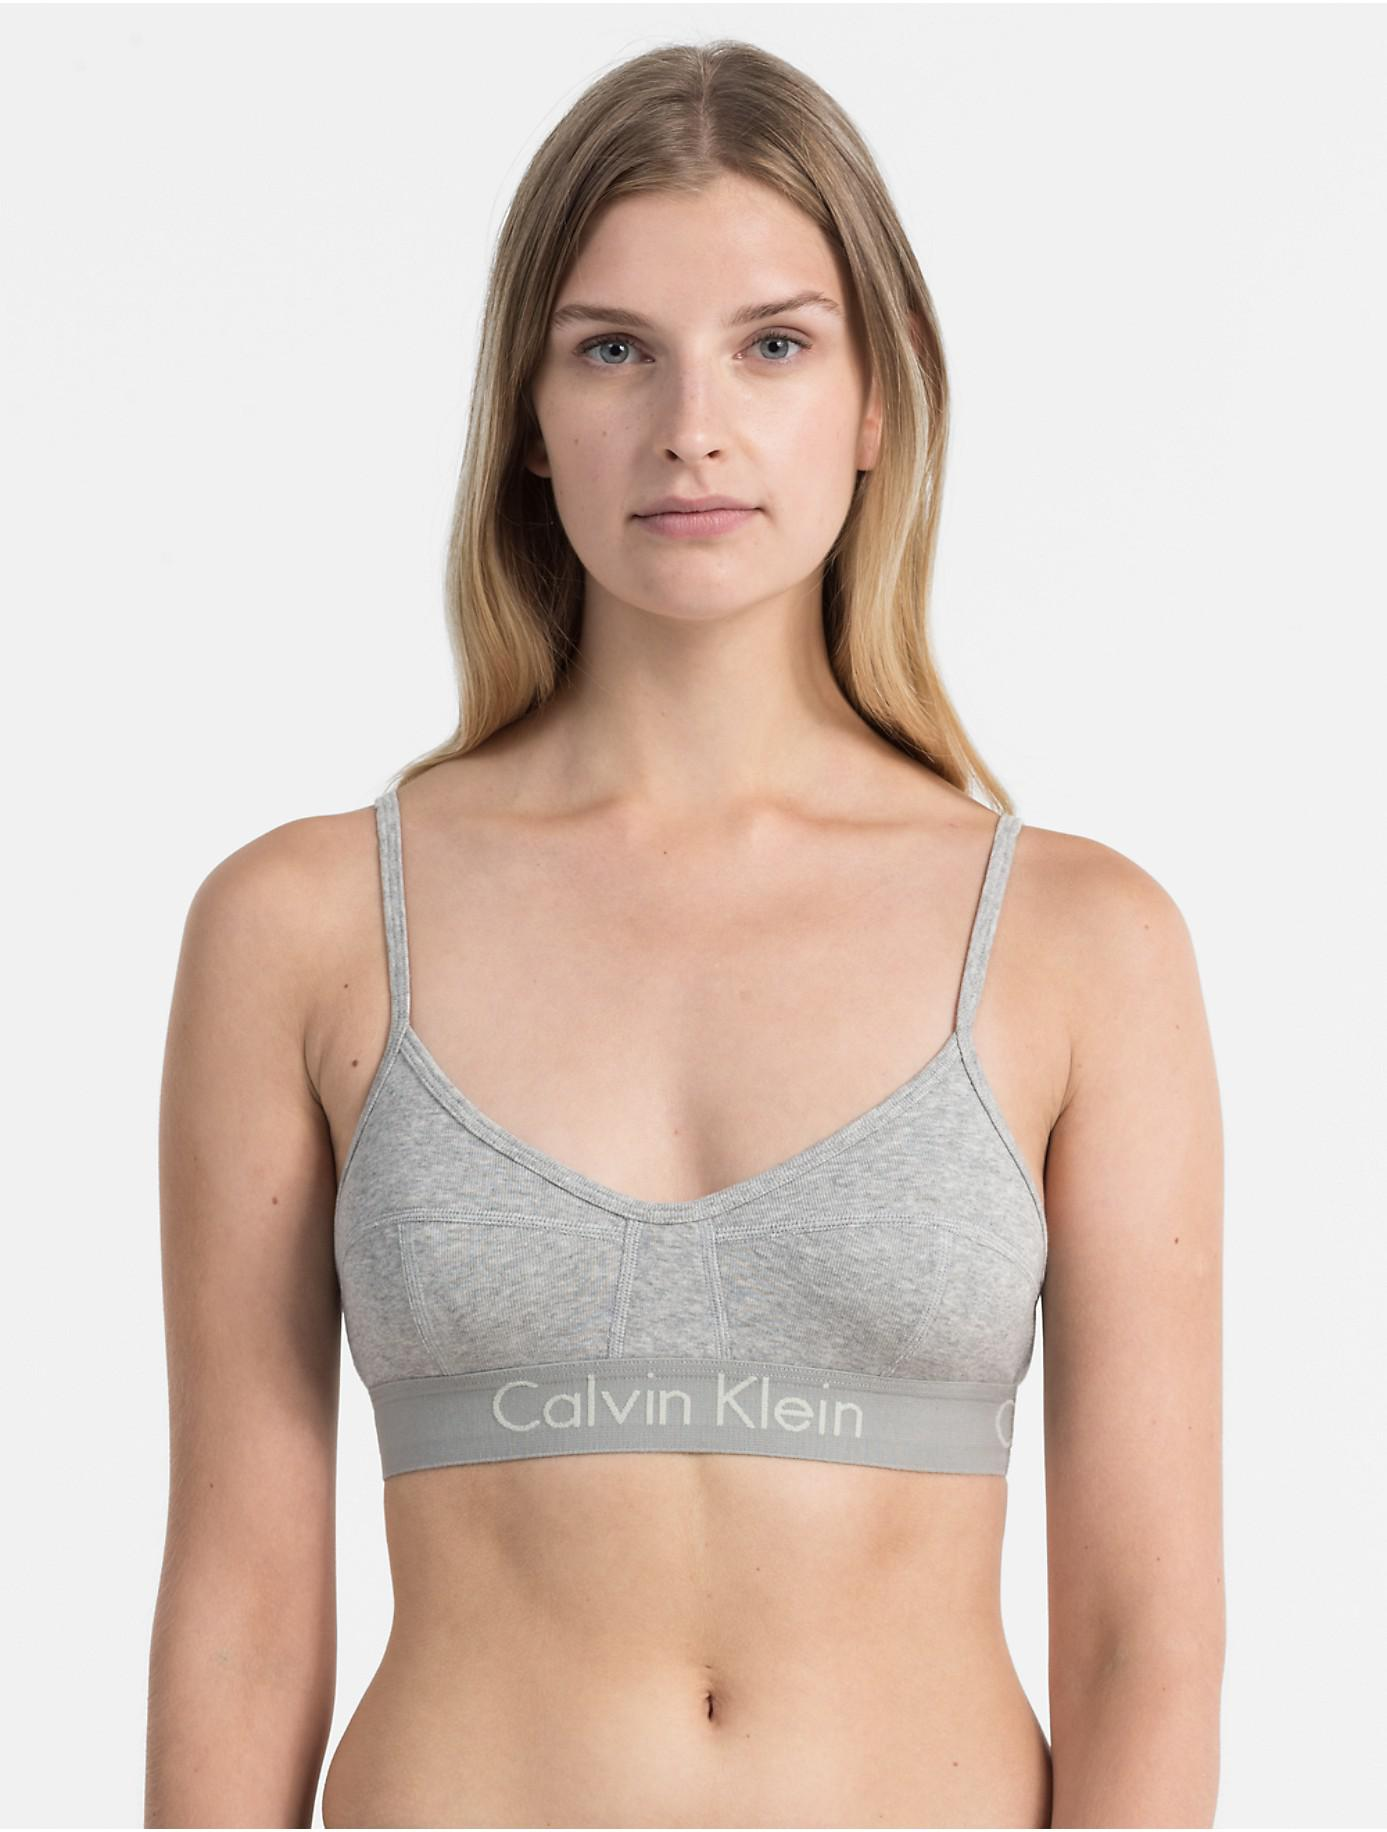 d21de41b444a1 Lyst - Calvin Klein Body Unlined Bralette in Gray